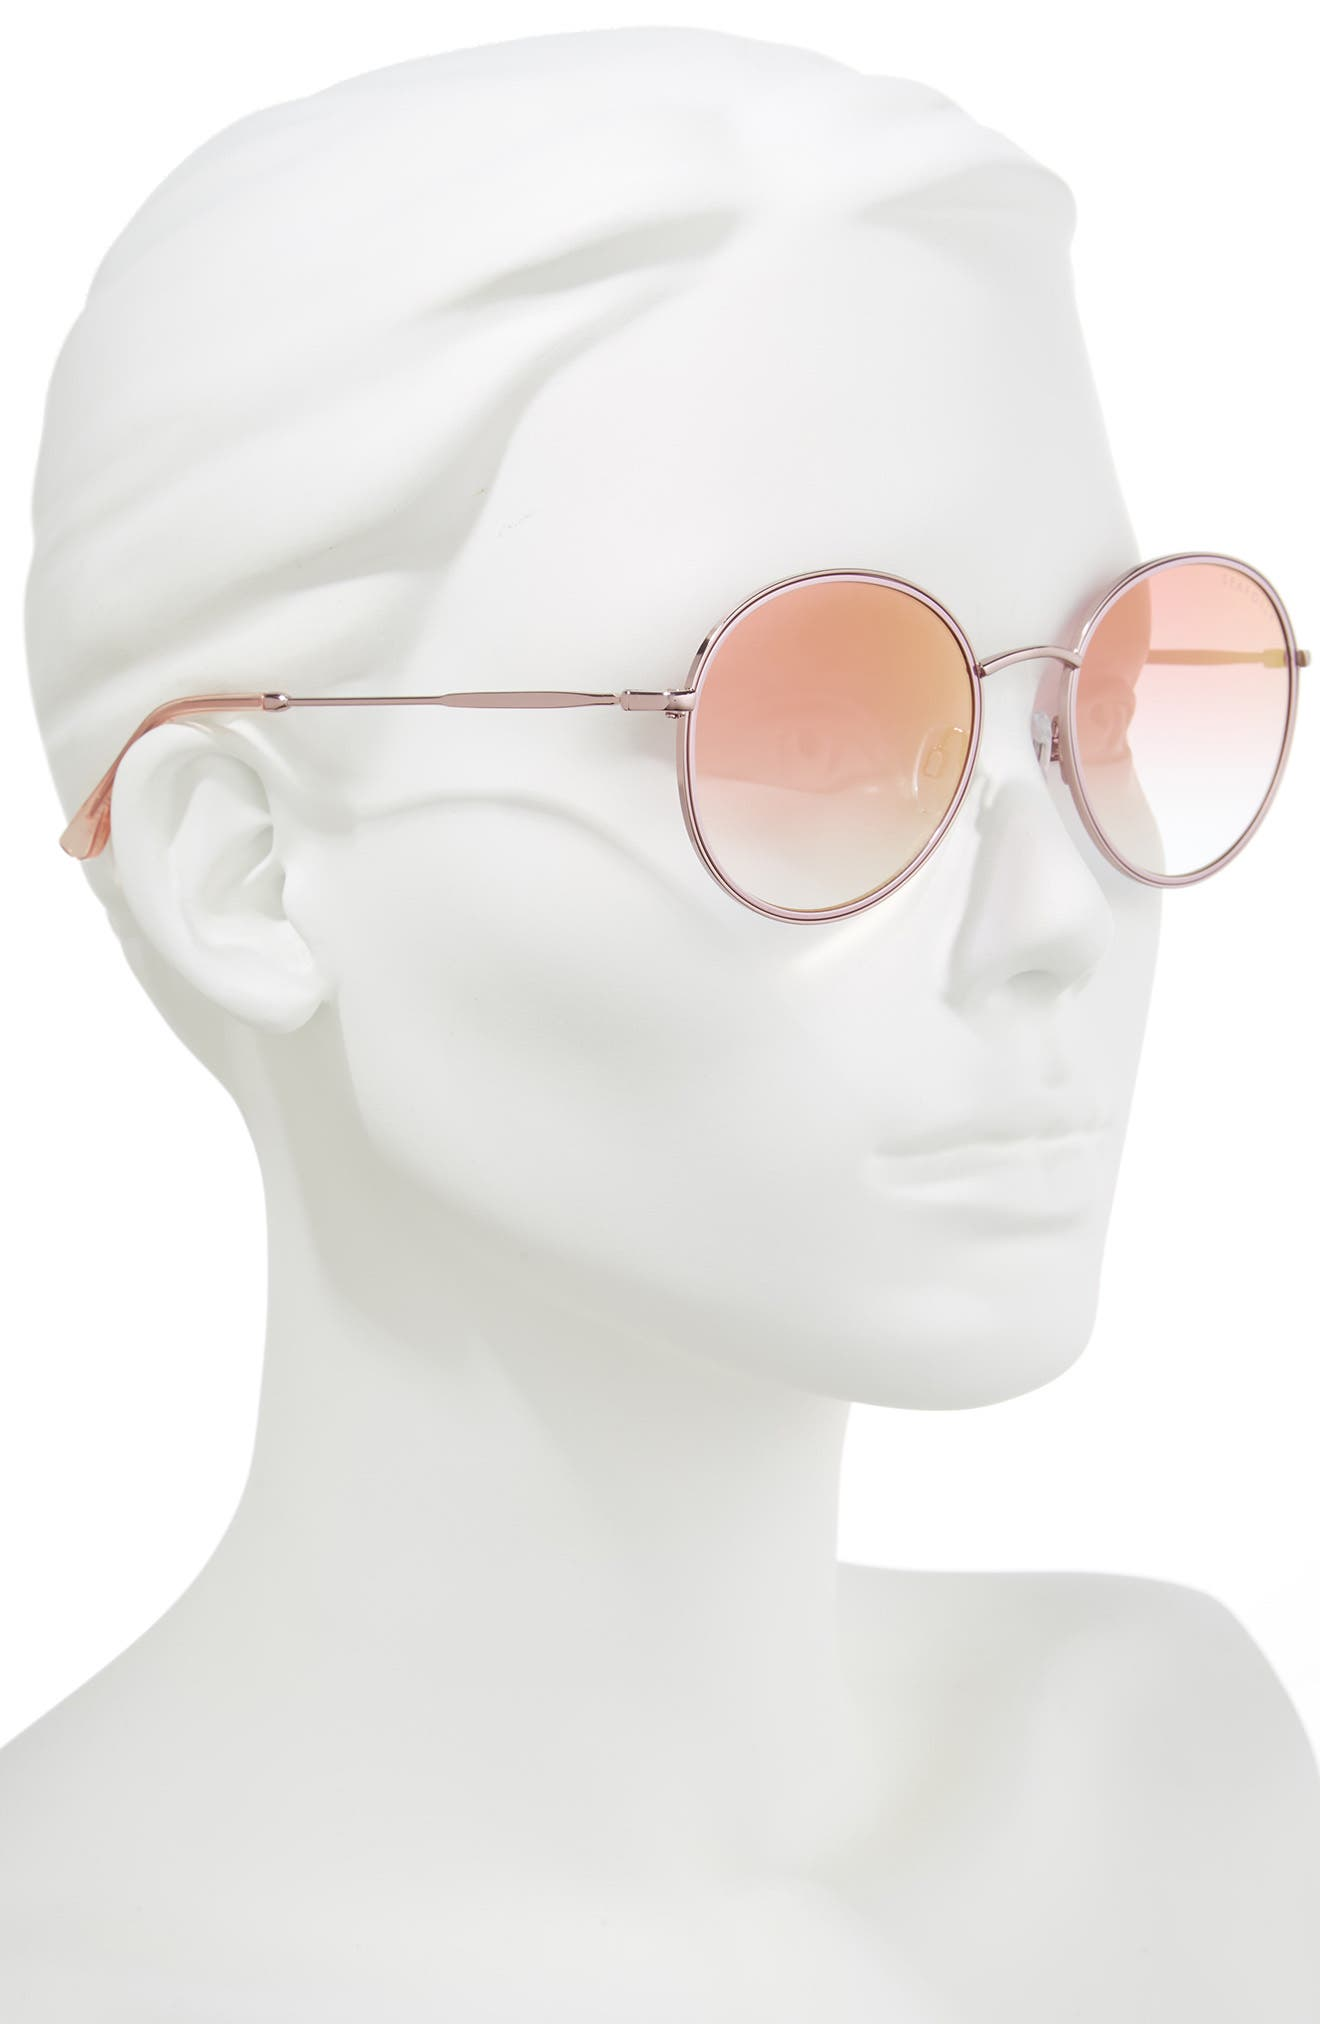 Coogee 54mm Round Sunglasses,                             Alternate thumbnail 2, color,                             Rose